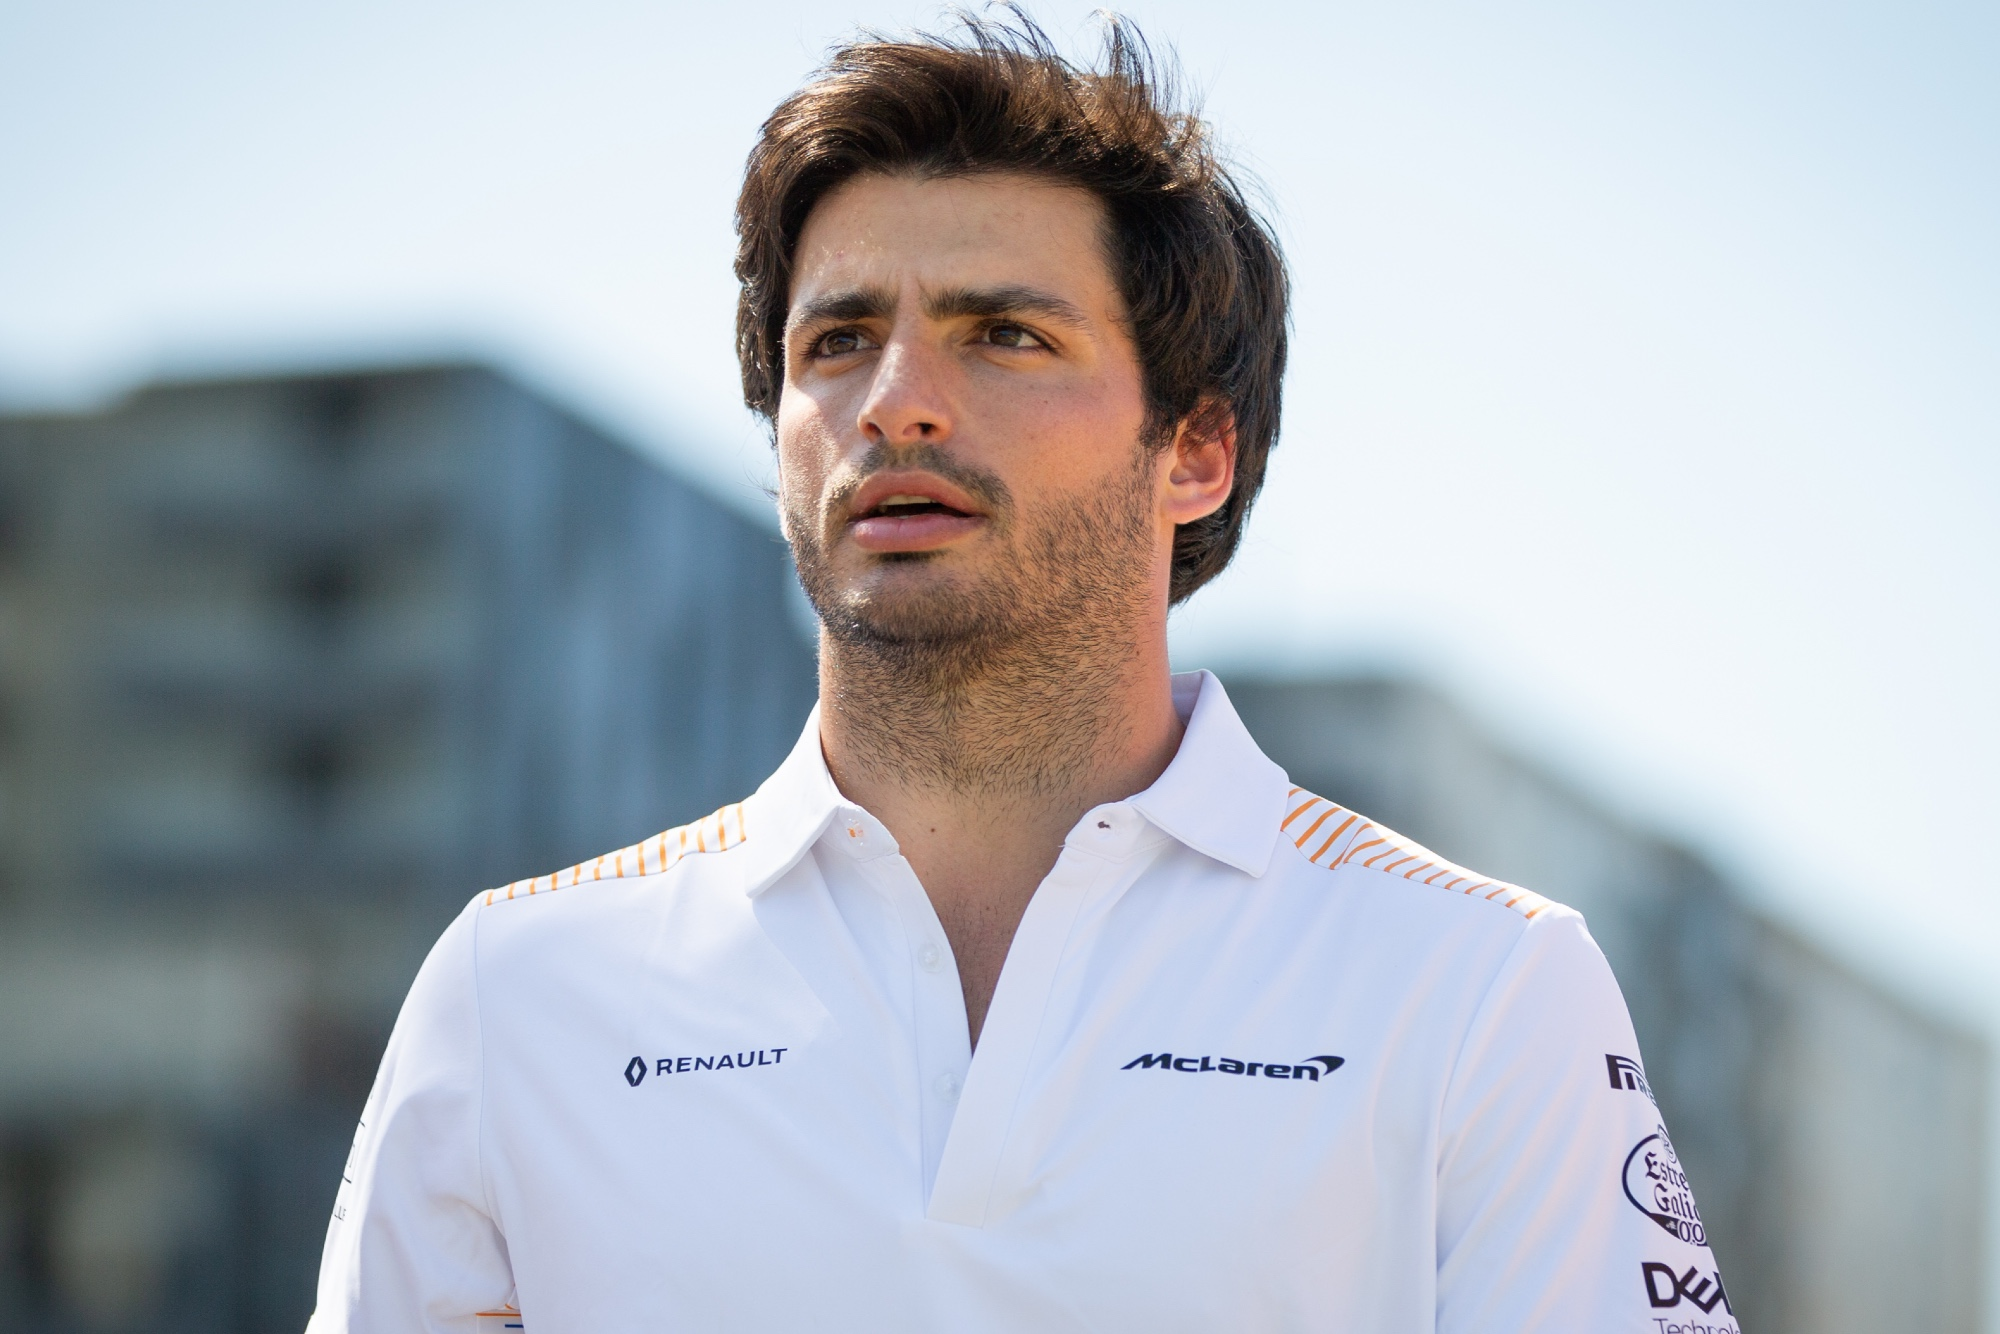 Ferrari announces Carlos Sainz as Vettel replacement